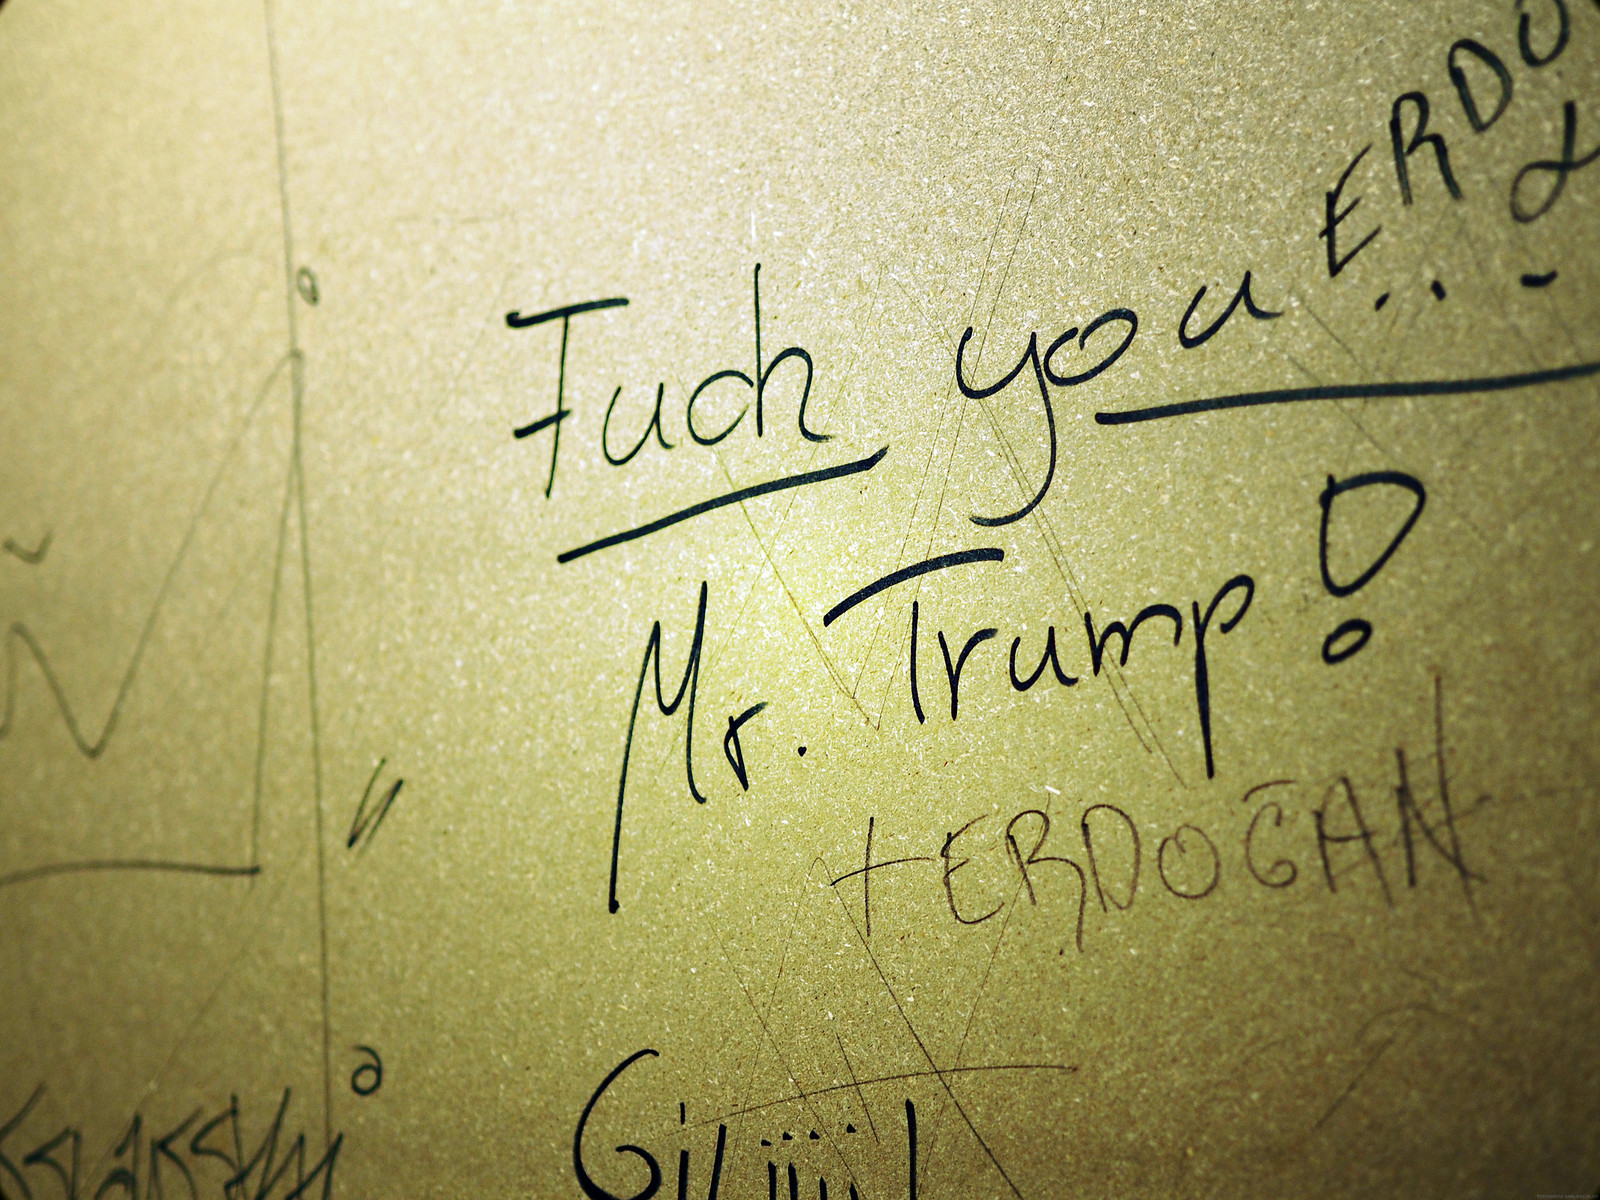 Fuck you Mr Trump German Street Art Graffiti_effected